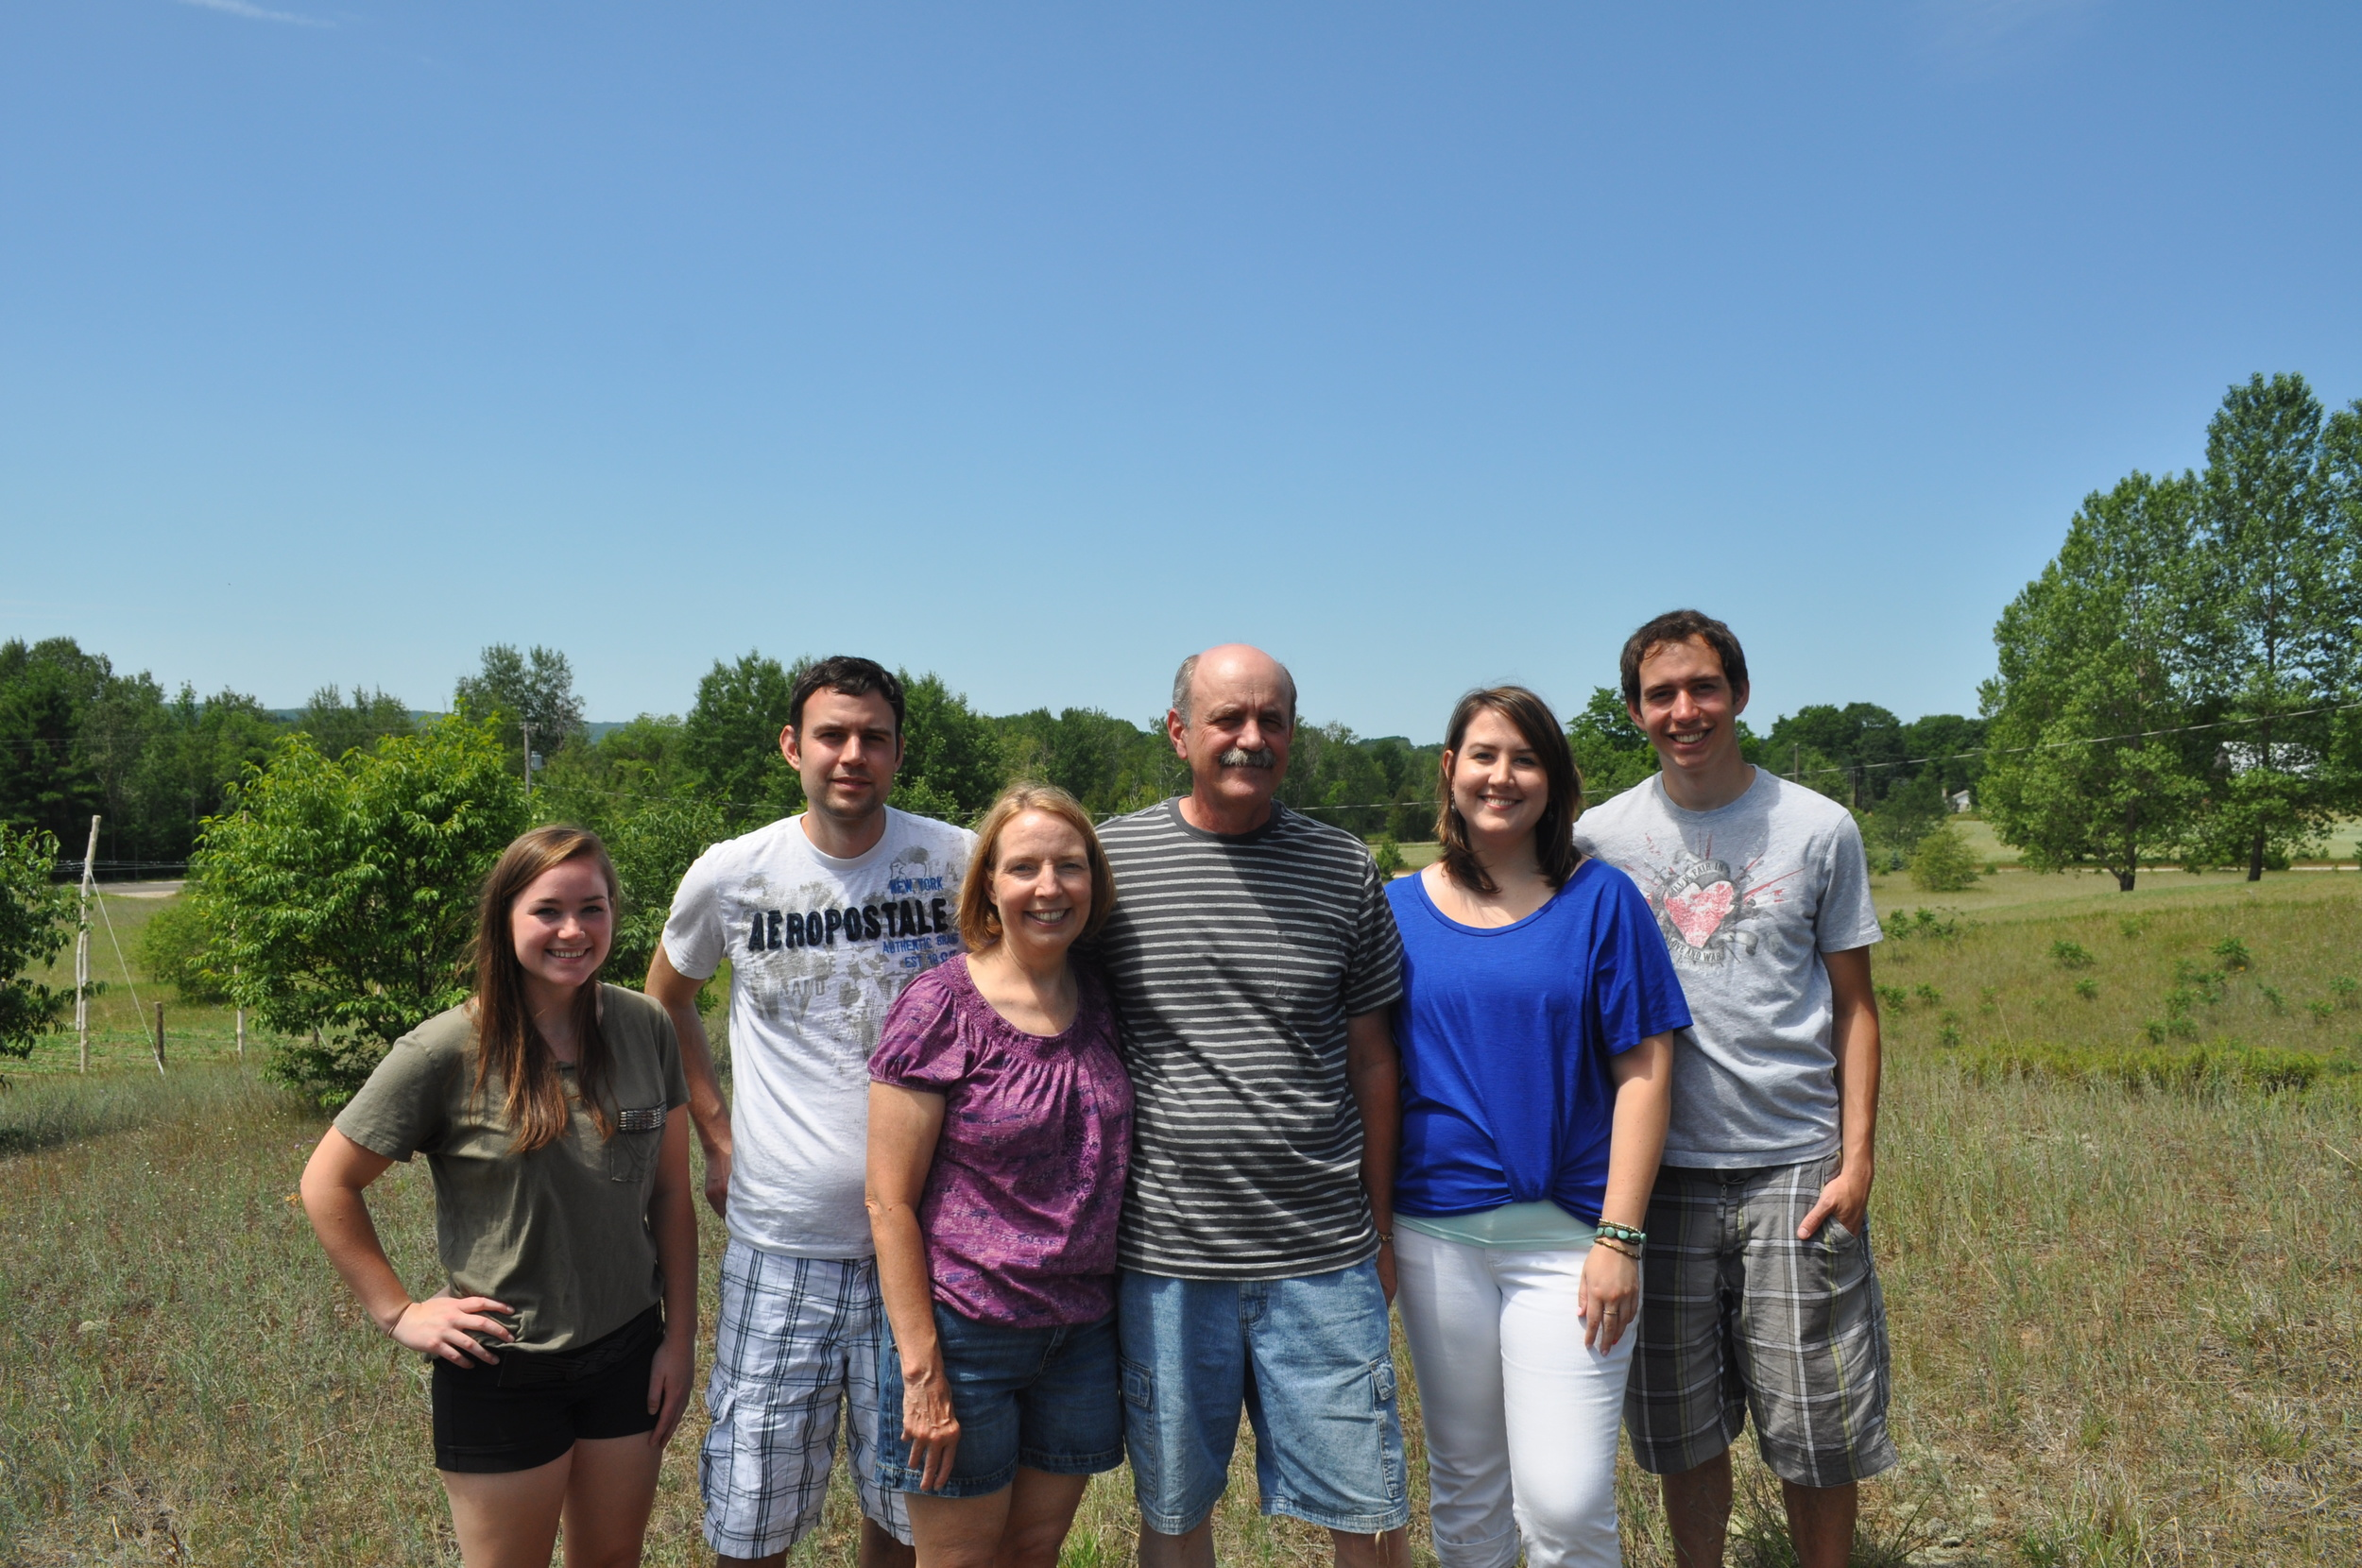 Our family in 2013.